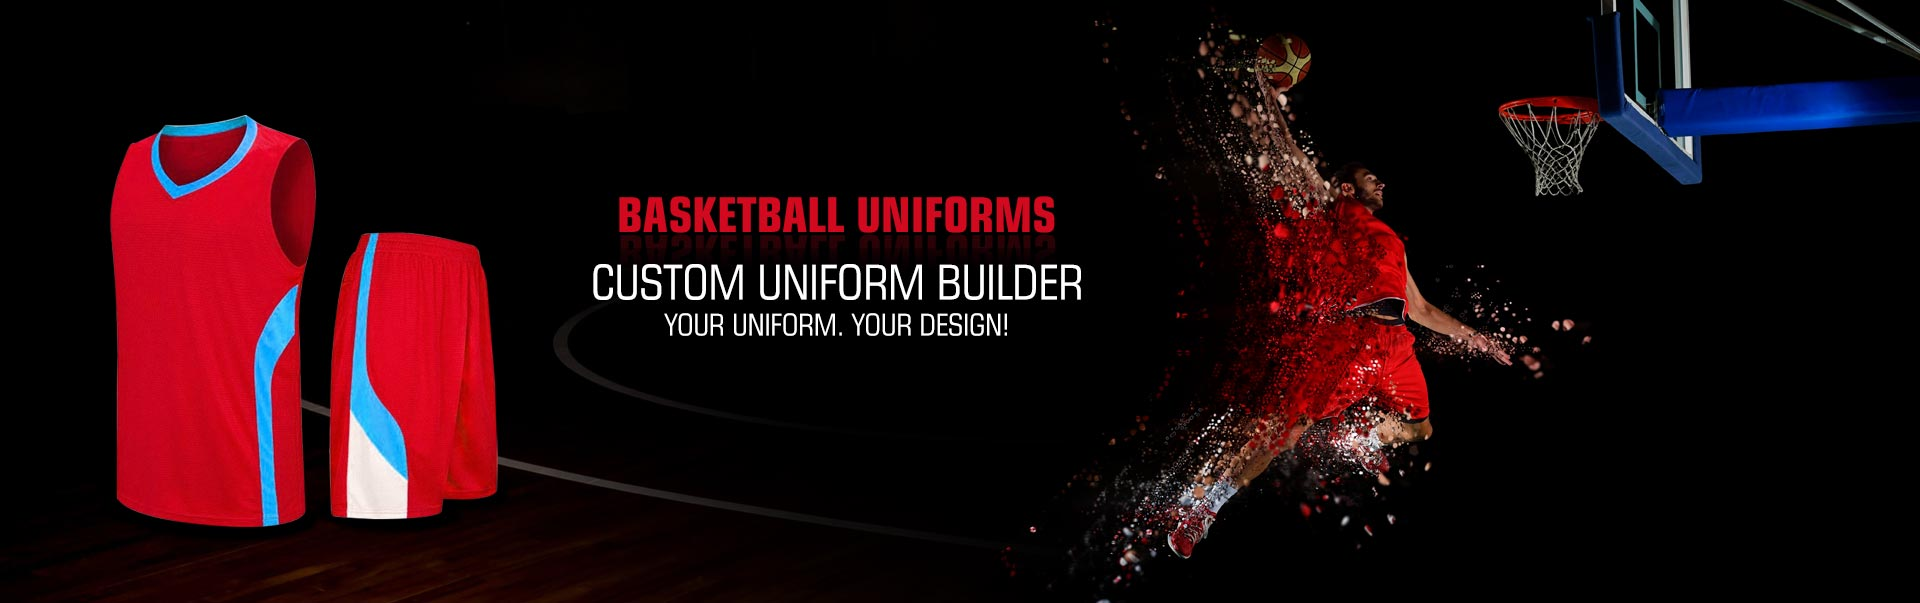 Basketball Uniforms Wholesaler, Suppliers in Sandy Springs